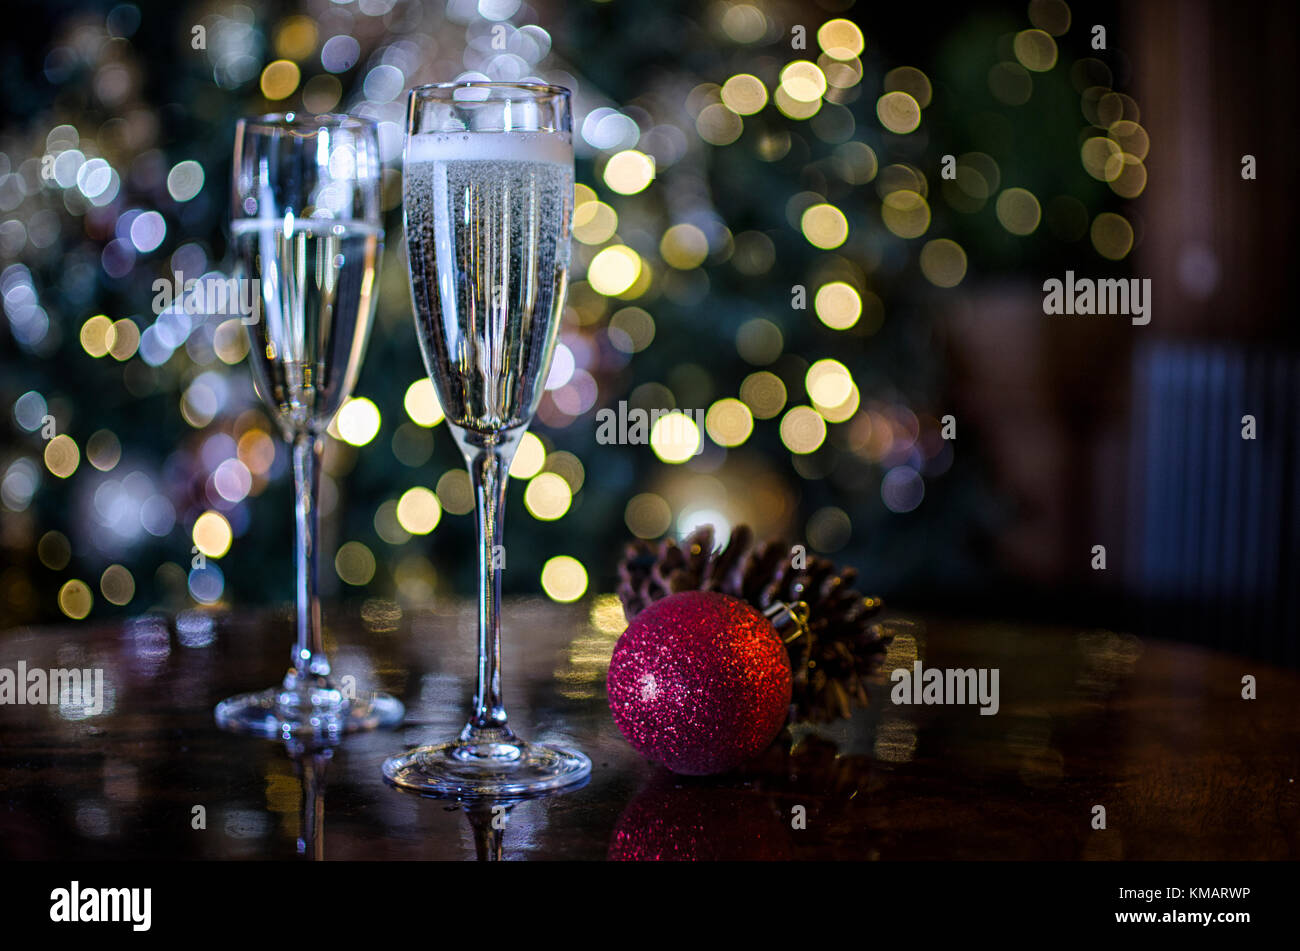 Two Champagne Glasses surrounded by Christmas Decorations - Stock Image